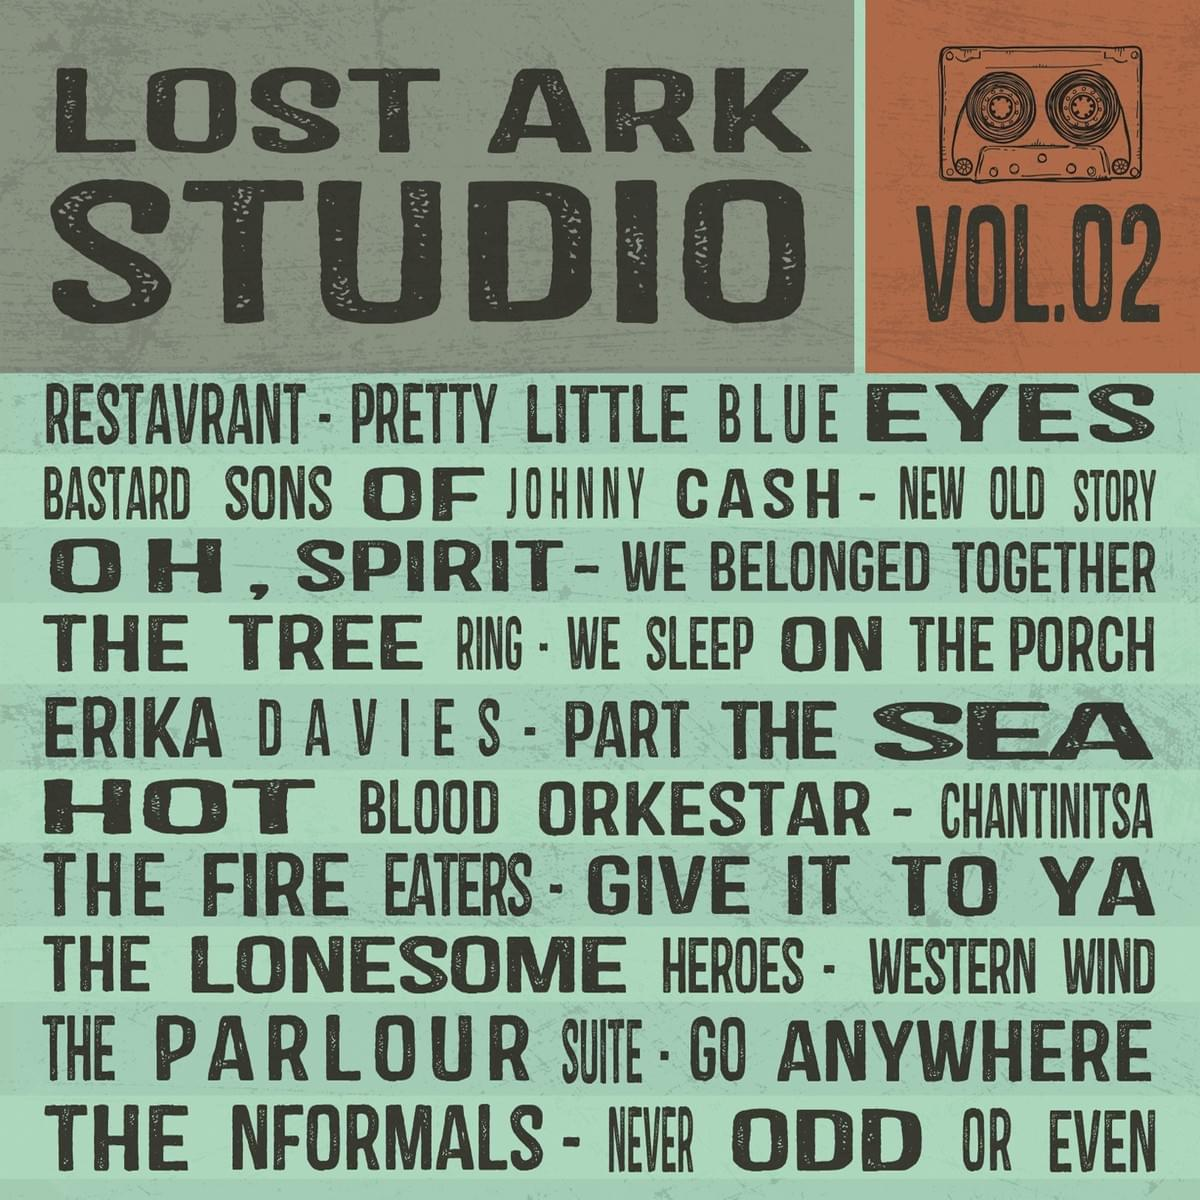 Lost Ark Studio Compilation - Vol. 02